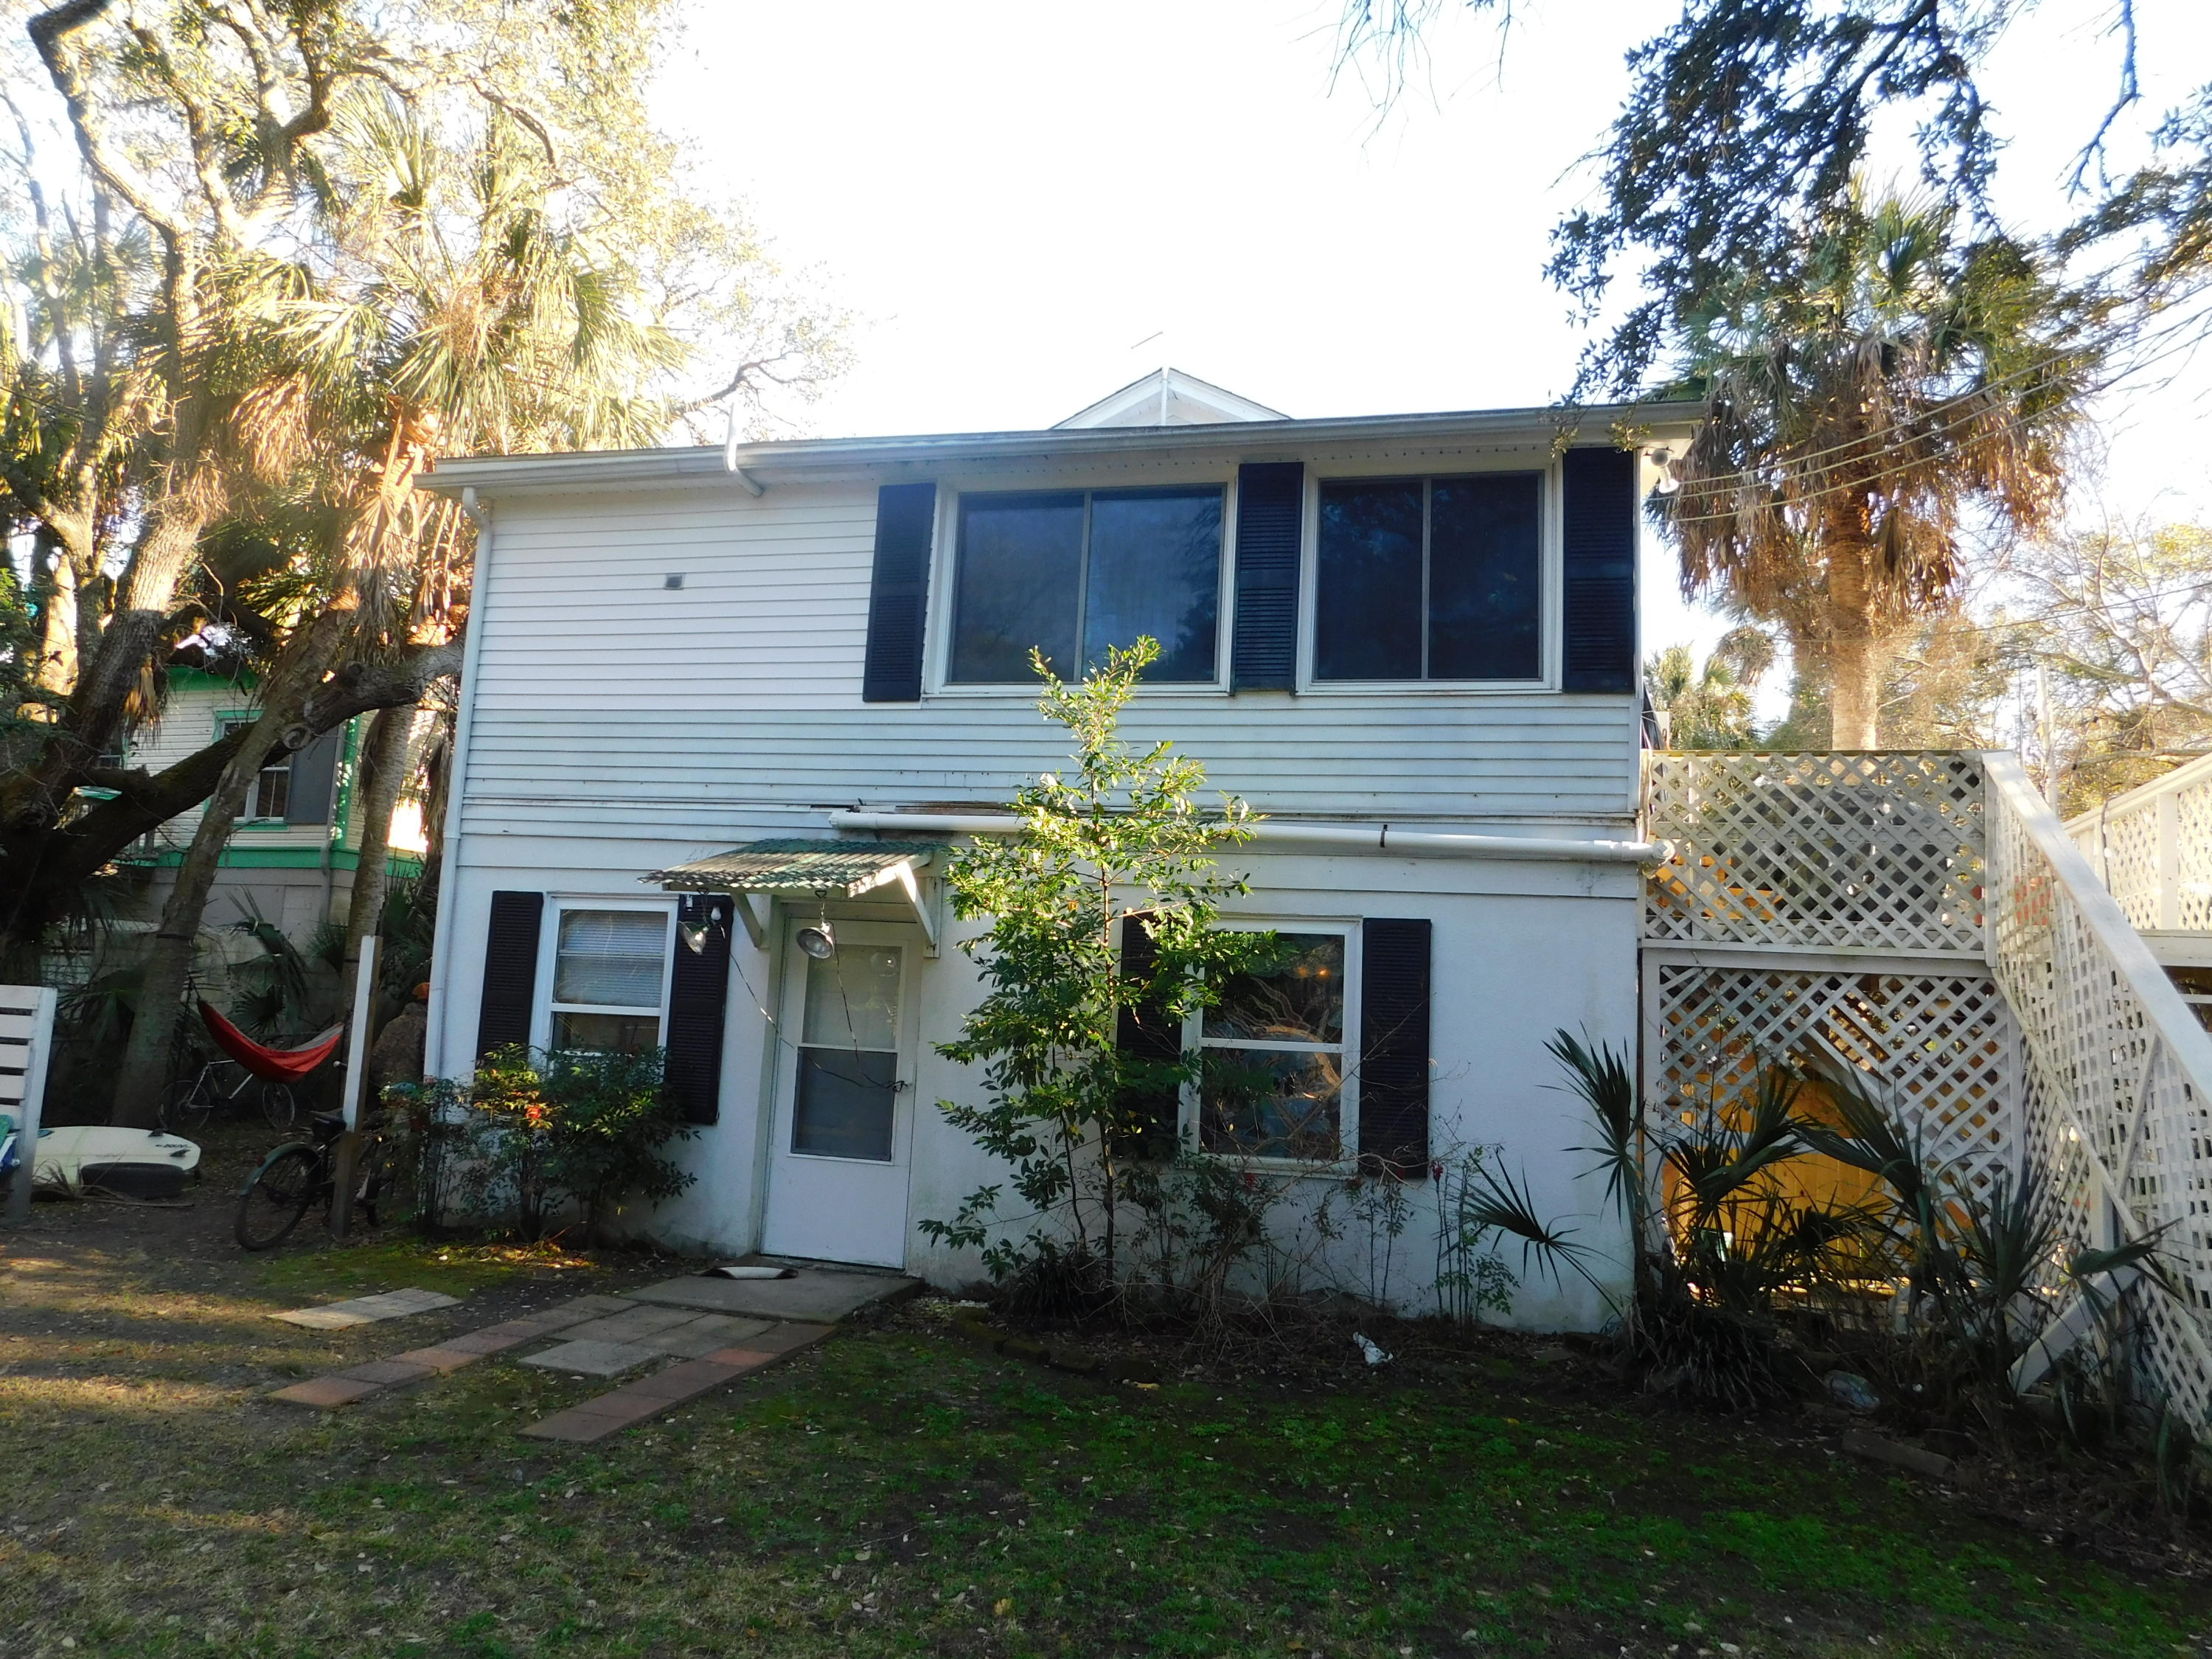 Photo of 414 E Ashley Ave, Folly Beach, SC 29439